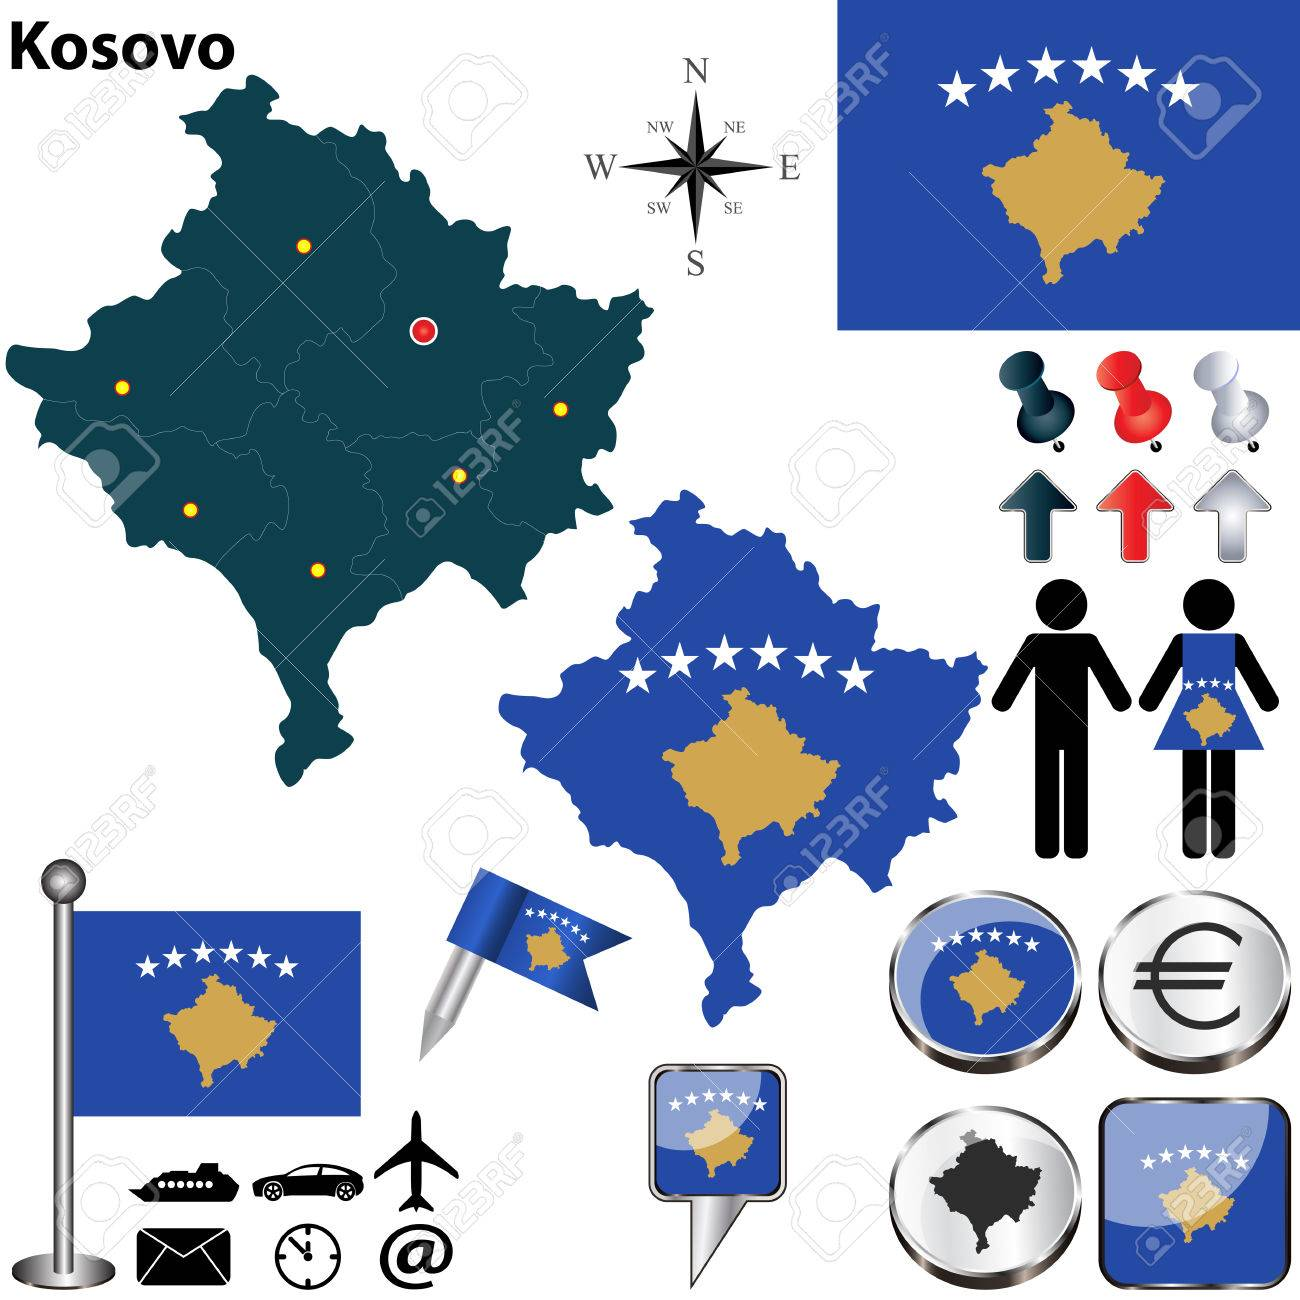 Map of kosovo with regions coat of arms and location on world map of kosovo with regions coat of arms and location on world map stock vector gumiabroncs Image collections